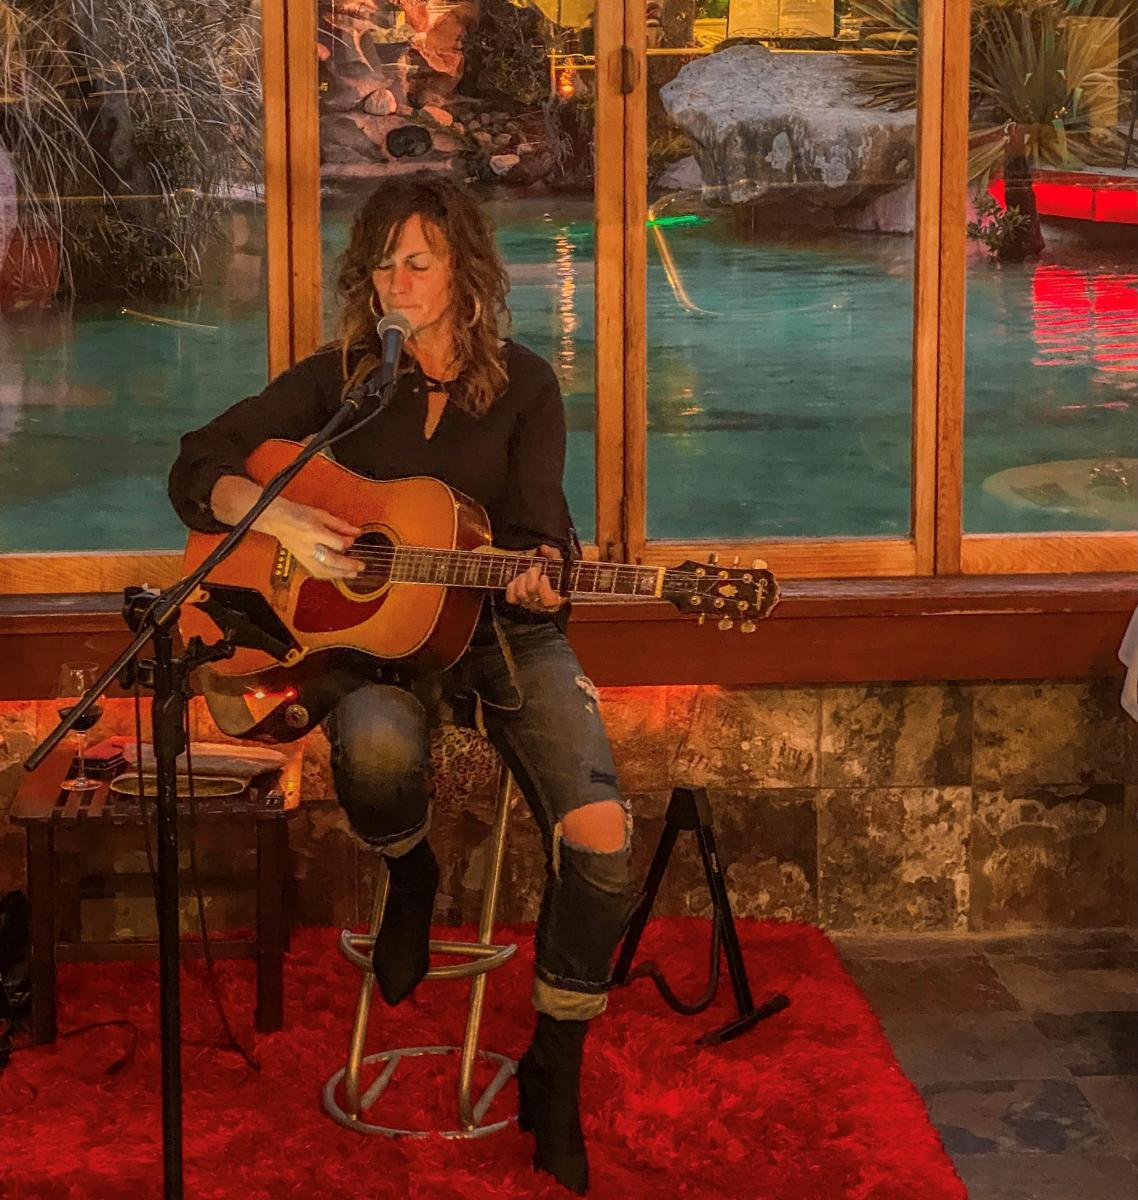 Live music - Every Friday at The Lost Spring's Happy Hour